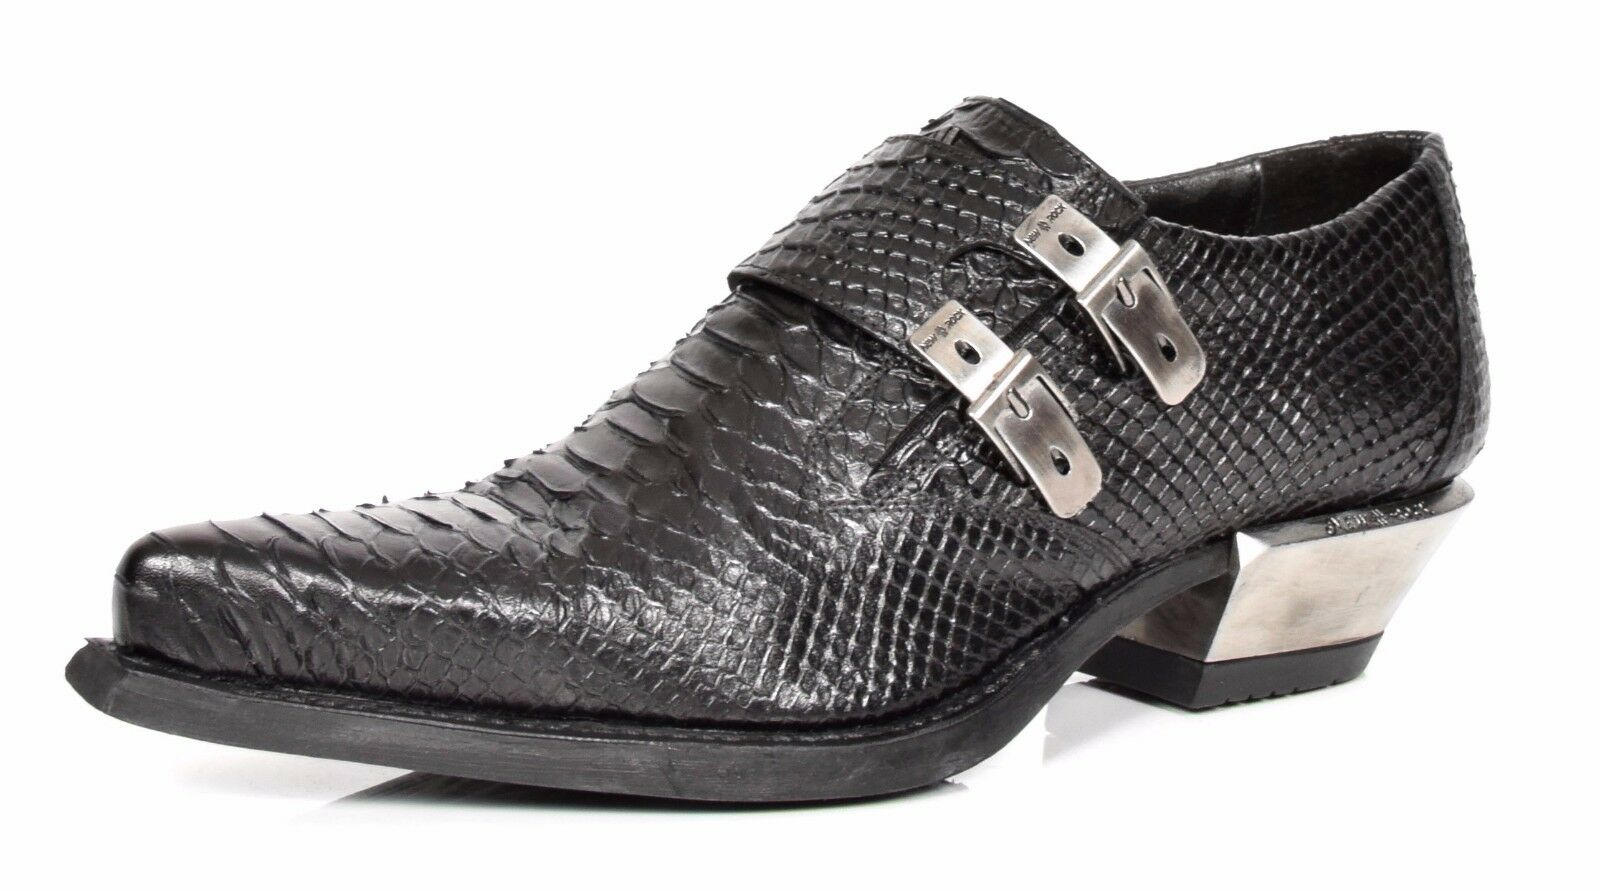 Mens Black Snakeskin Print Real Leather shoes New Rock Pointed Toe Smart Loafers